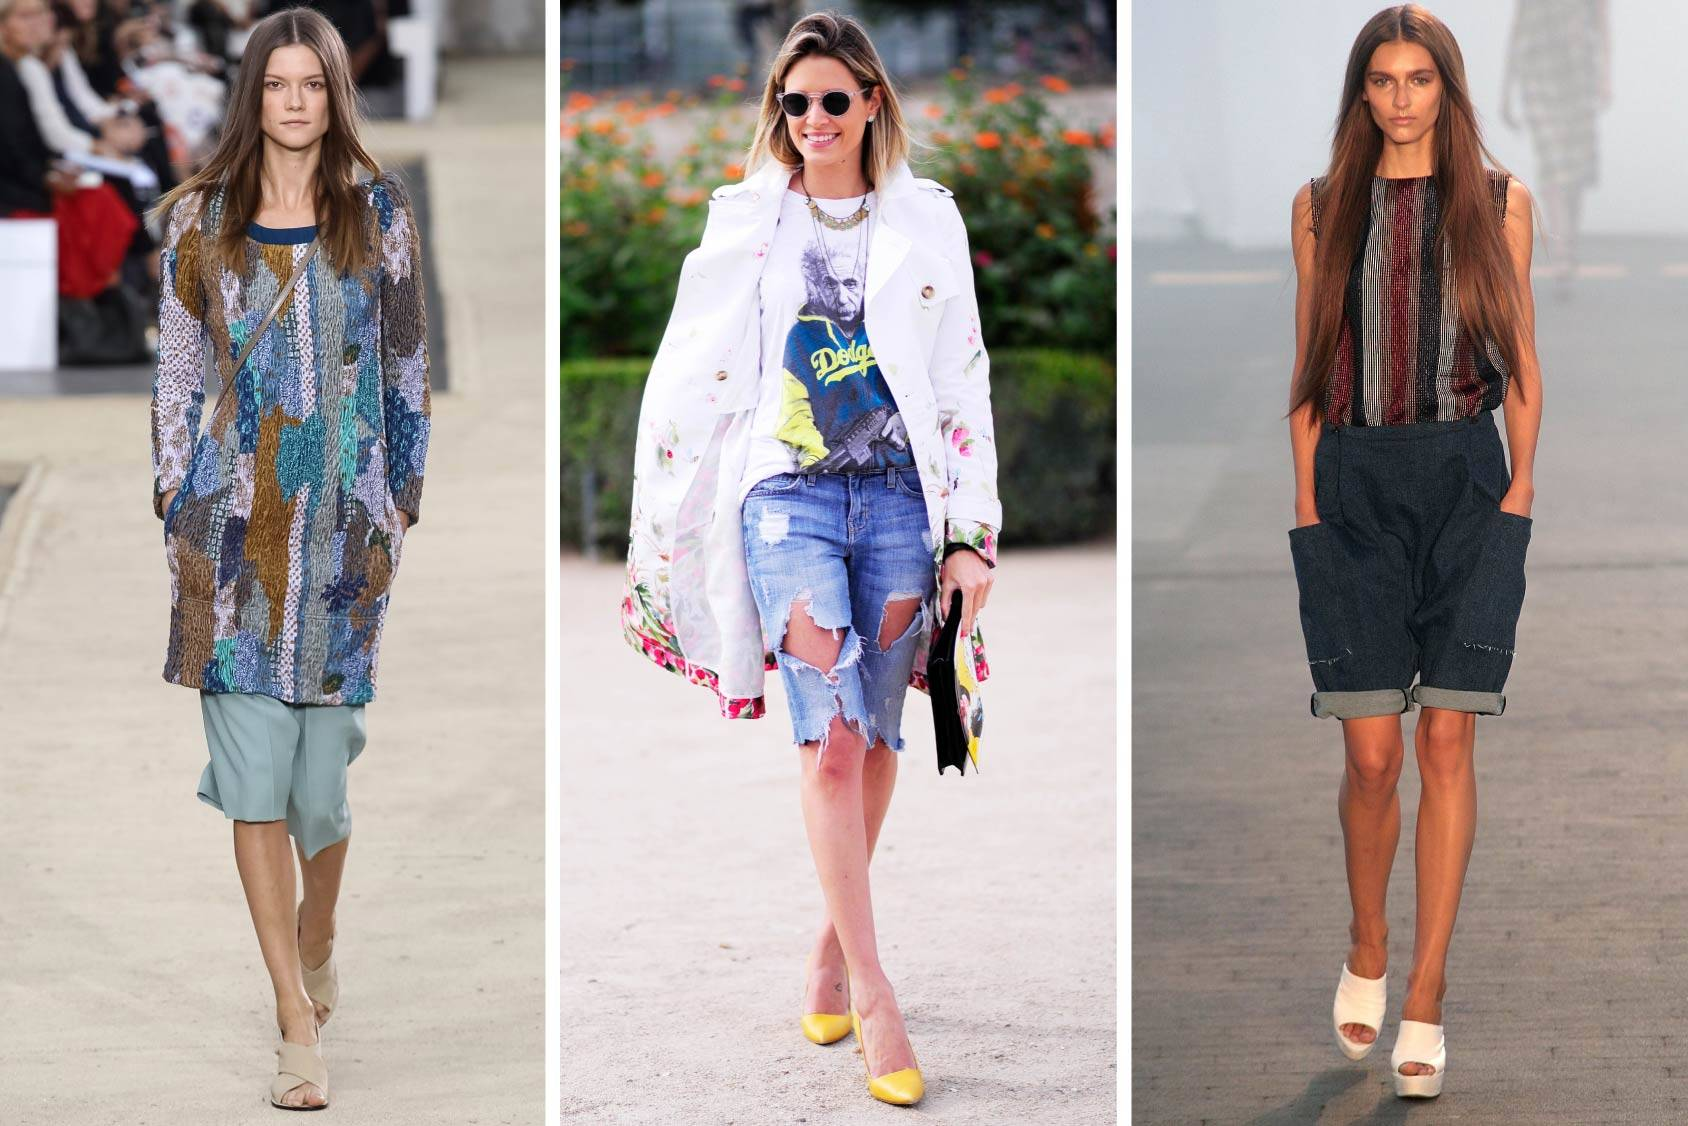 Chloé Spring/Summer 2014, Street style in Paris and Jen Kao Spring/Summer 2014, All Over Press/TT.